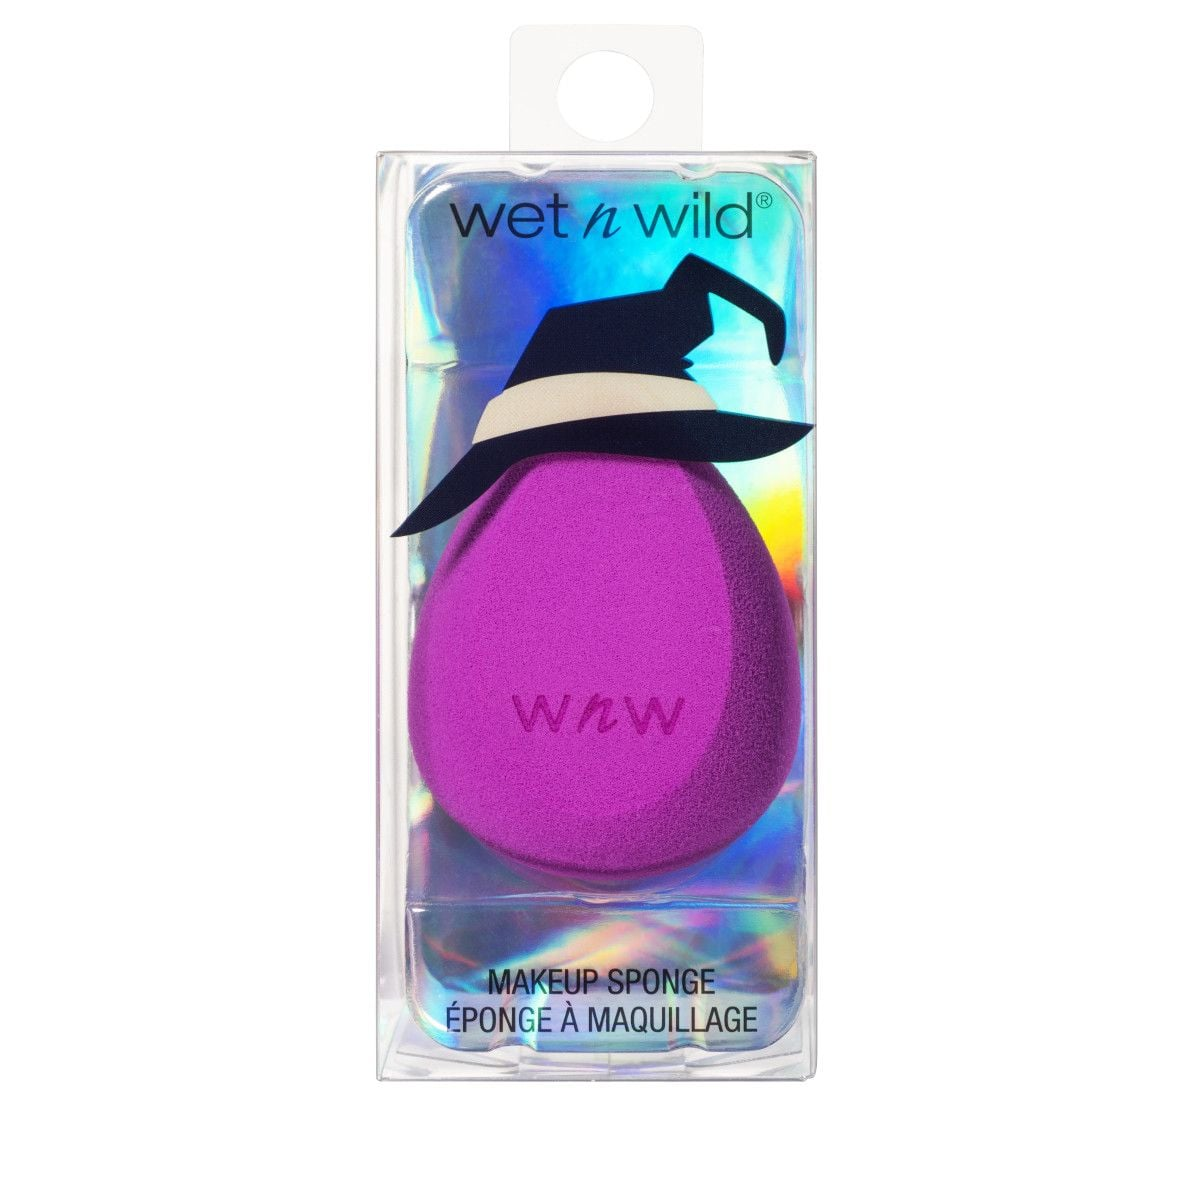 Maquillage Halloween 95.Wet N Wild Fantasy Makers Makeup Sponge Wet N Wild S Halloween Collection Has 95 Products To Make Your Costume Dreams A Reality Popsugar Beauty Photo 8